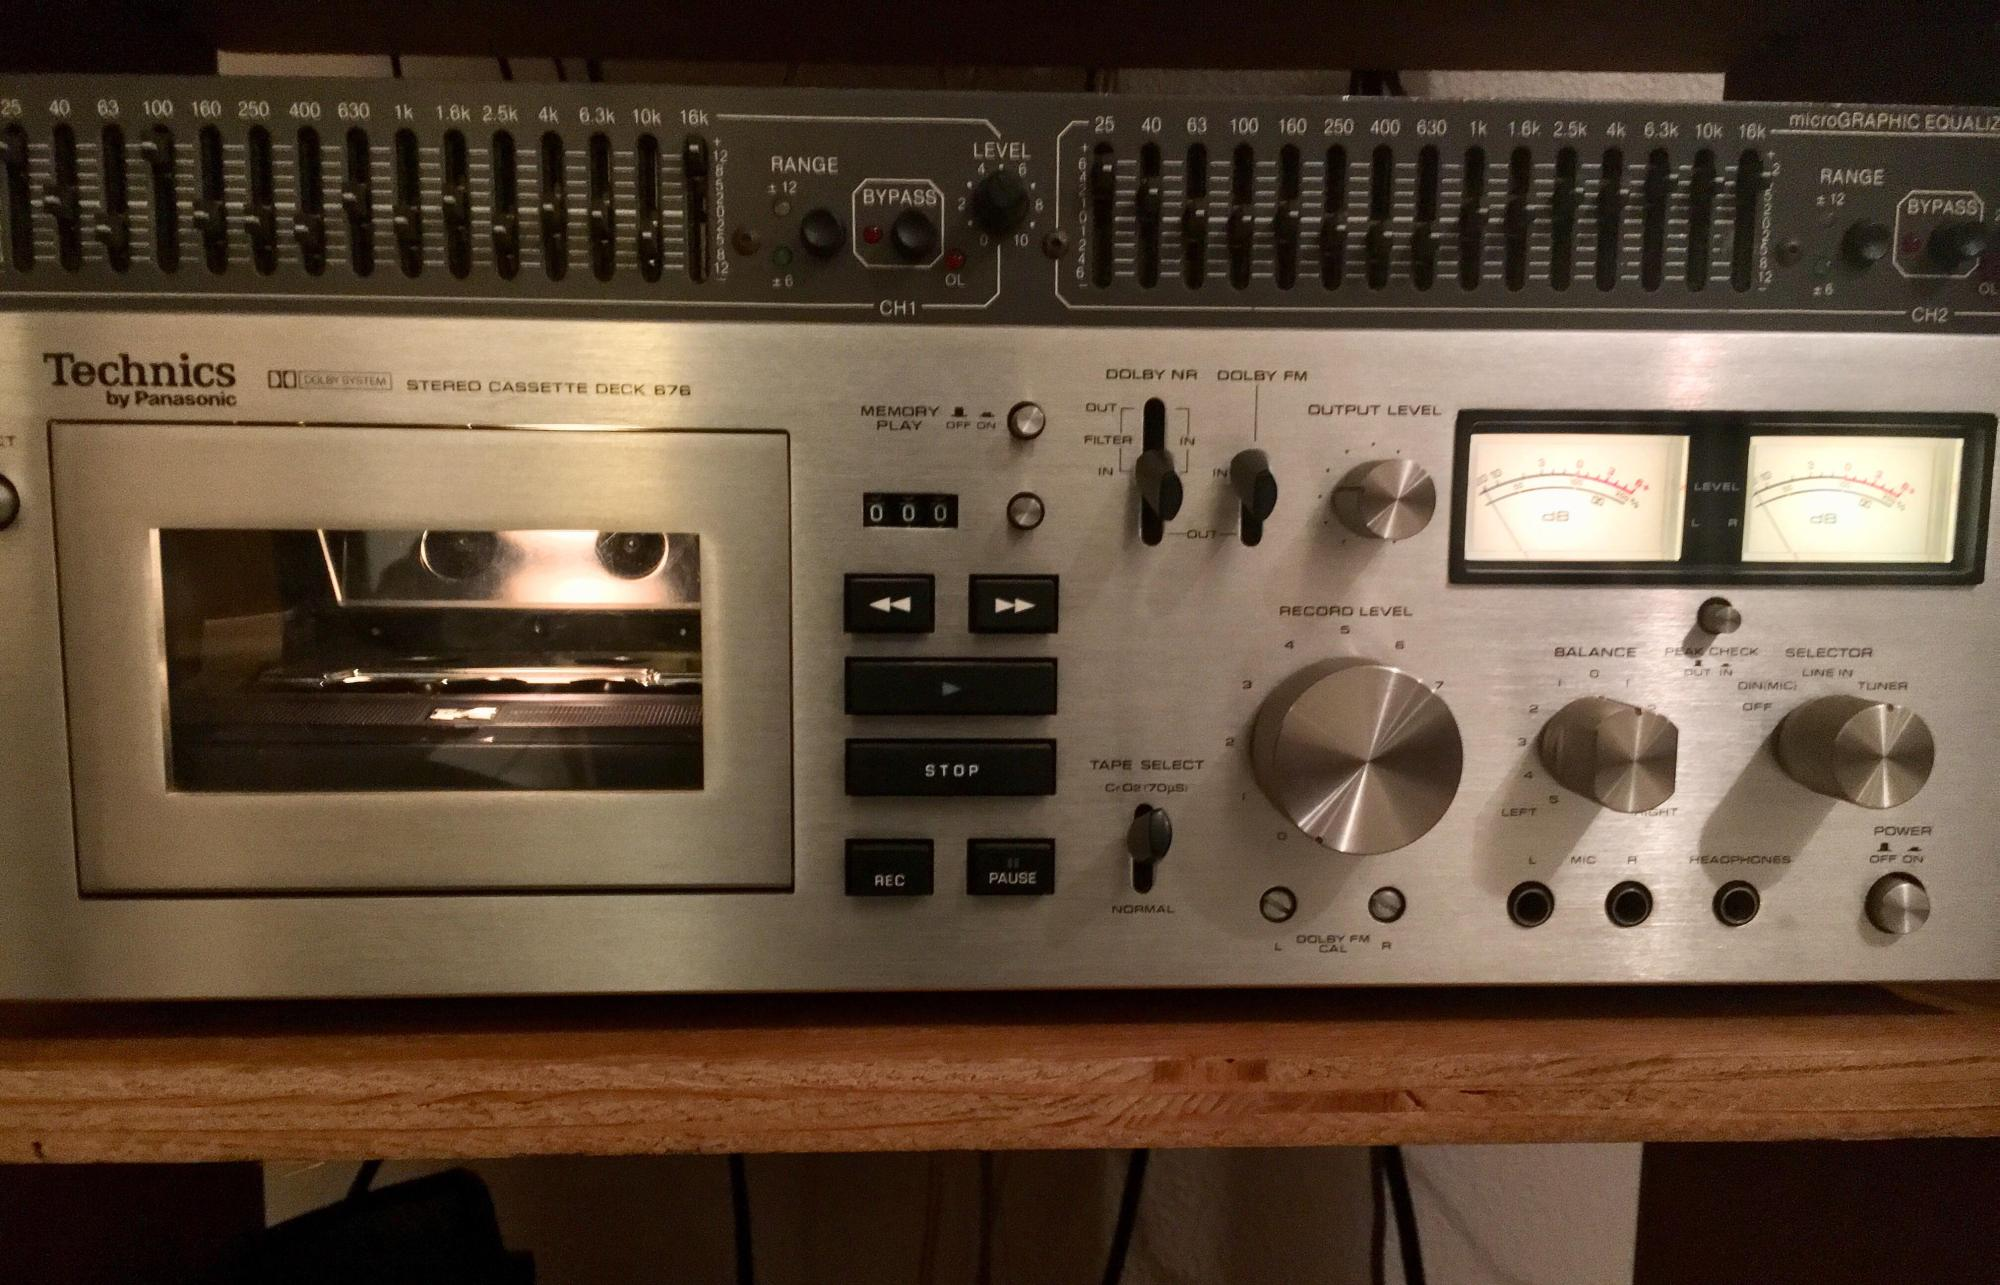 hight resolution of technics rs 676 tape deck s receiver counterpart i d like to obtain the technics receiver that goes with this high quality tape deck